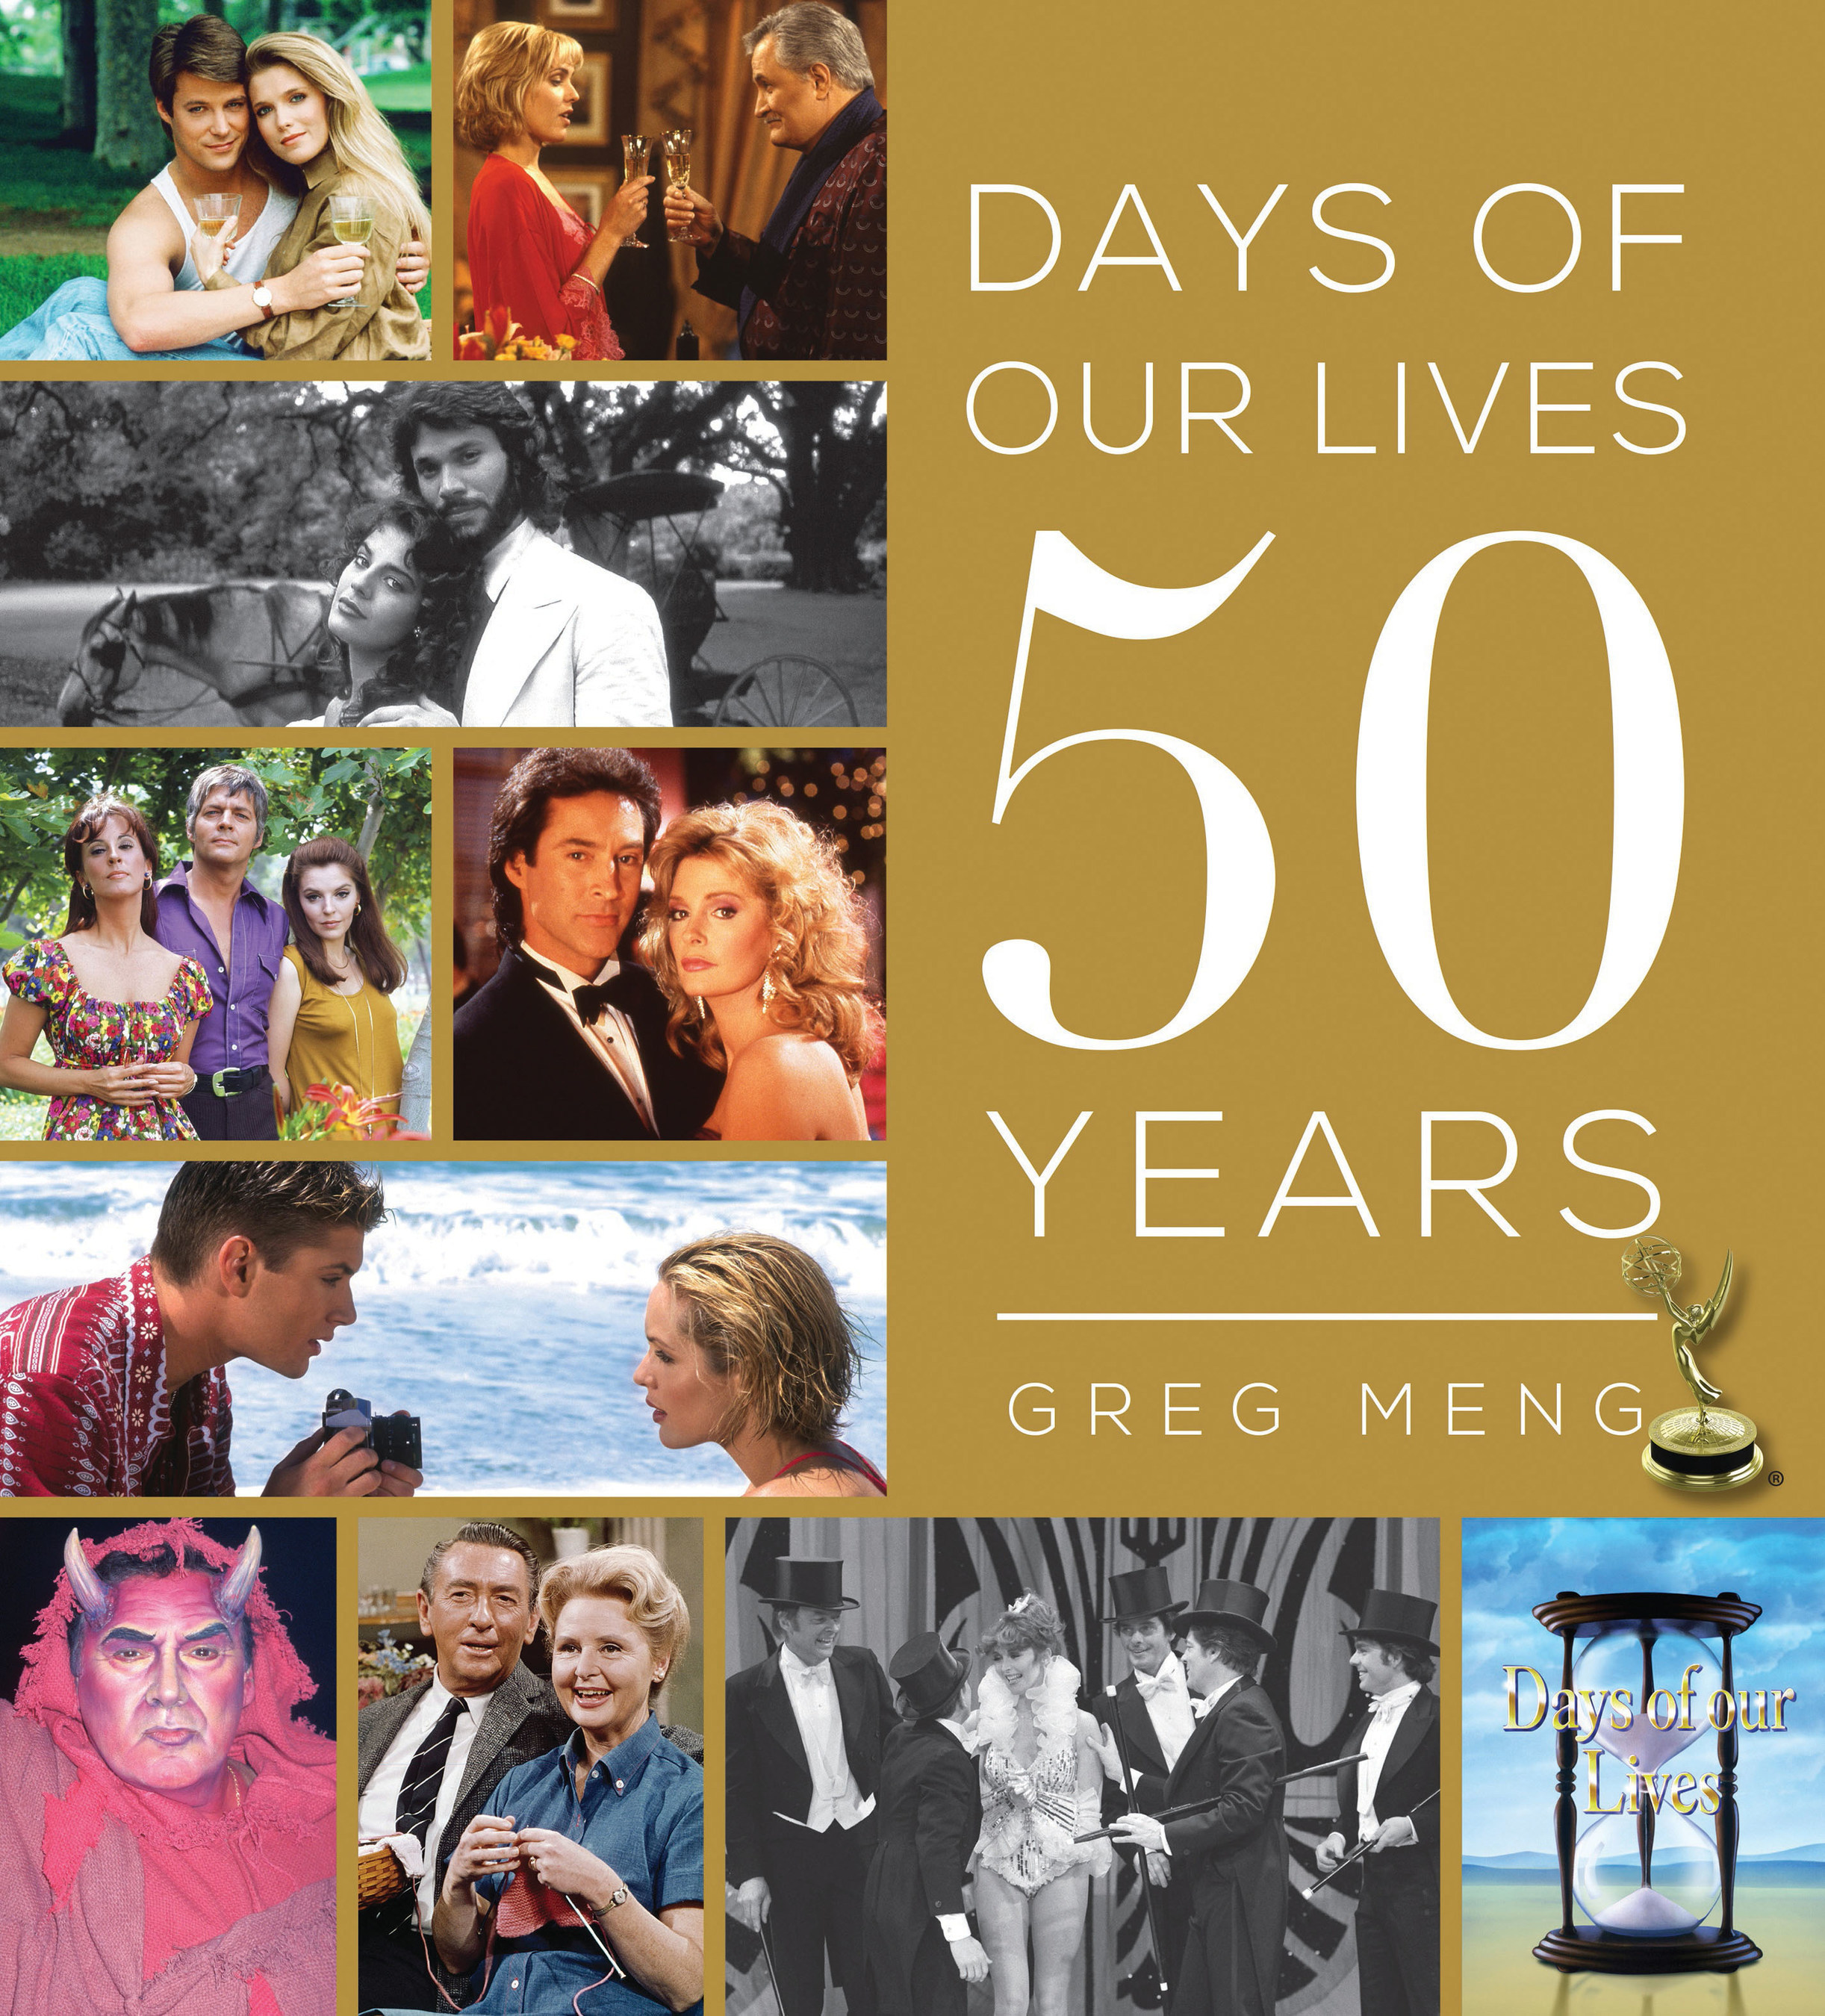 Days Of Our Lives Celebrates 50 Years With Launch Of Official Photo